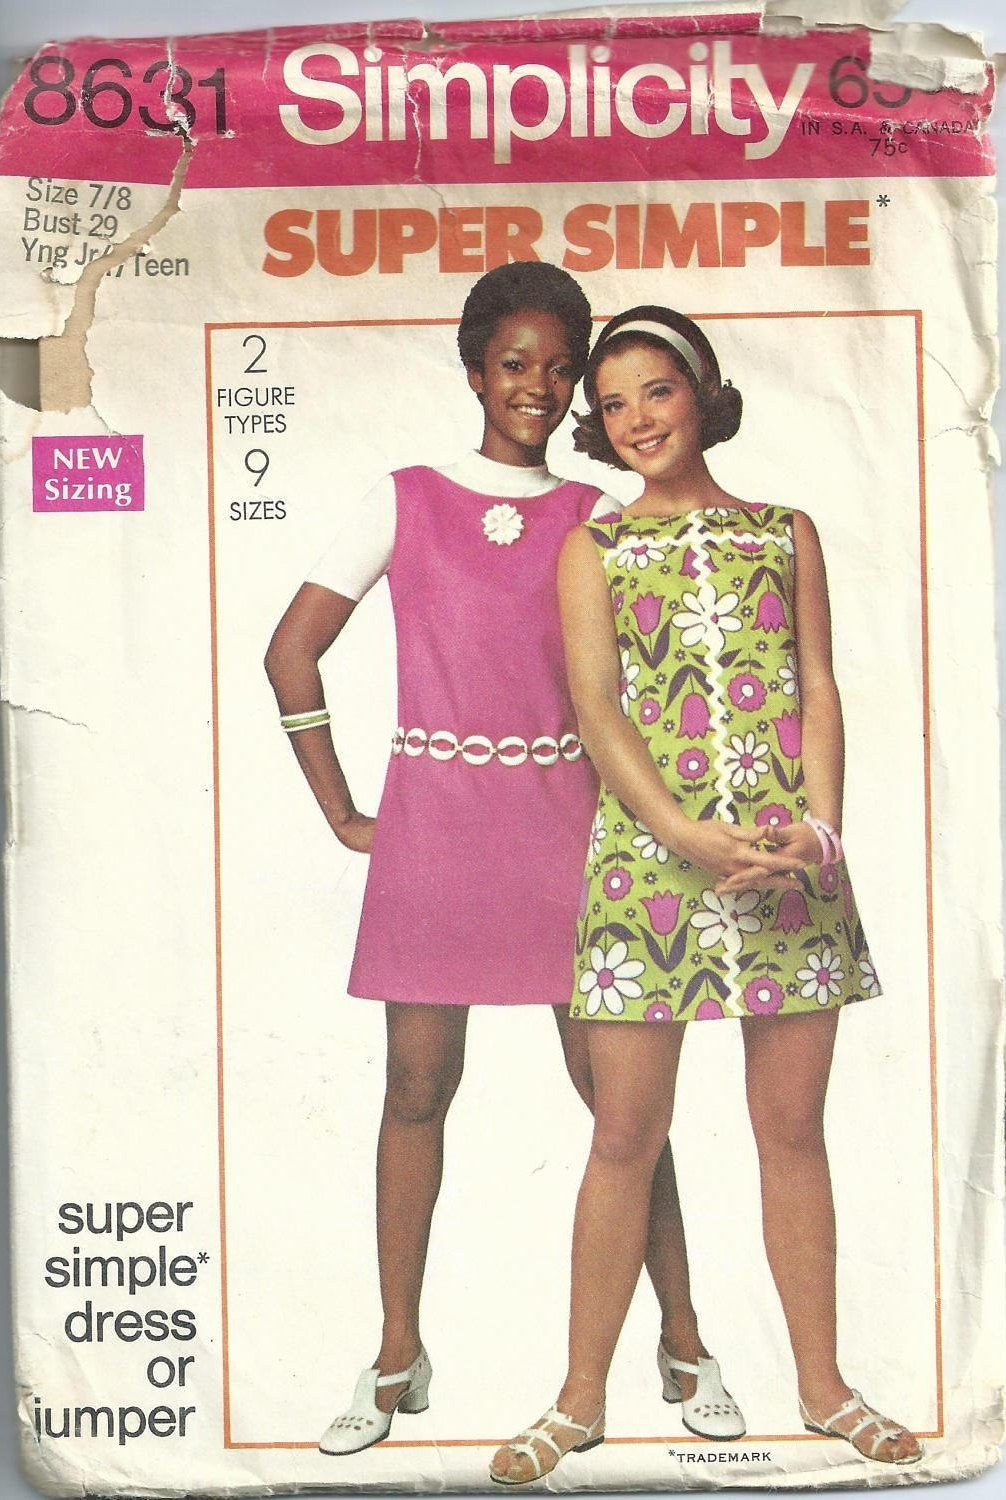 86e7341f695e1 Simplicity Sewing Pattern Vintage 8631 Young Junior Teen Super Simple Mini  Dress Jumper Size 7/8 Bust 29 Used 1969 from CadysCreativeStudio on Etsy  Studio